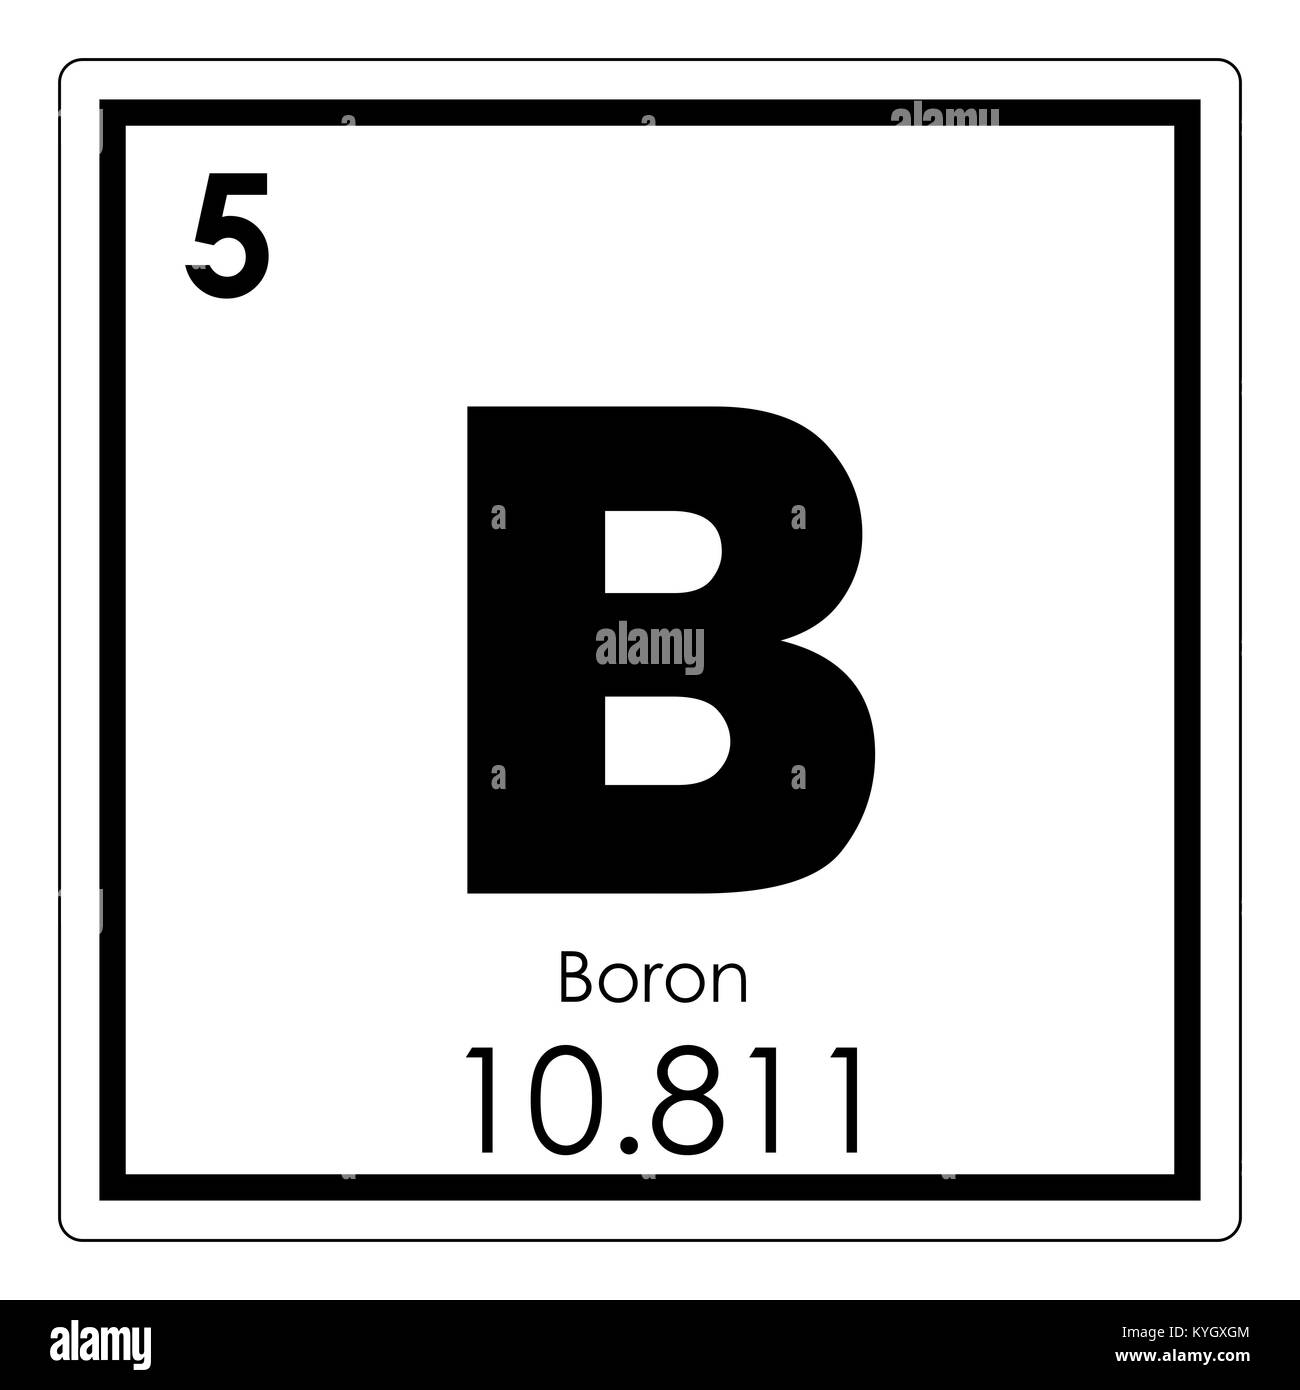 Boron chemical element periodic table science symbol stock photo boron chemical element periodic table science symbol buycottarizona